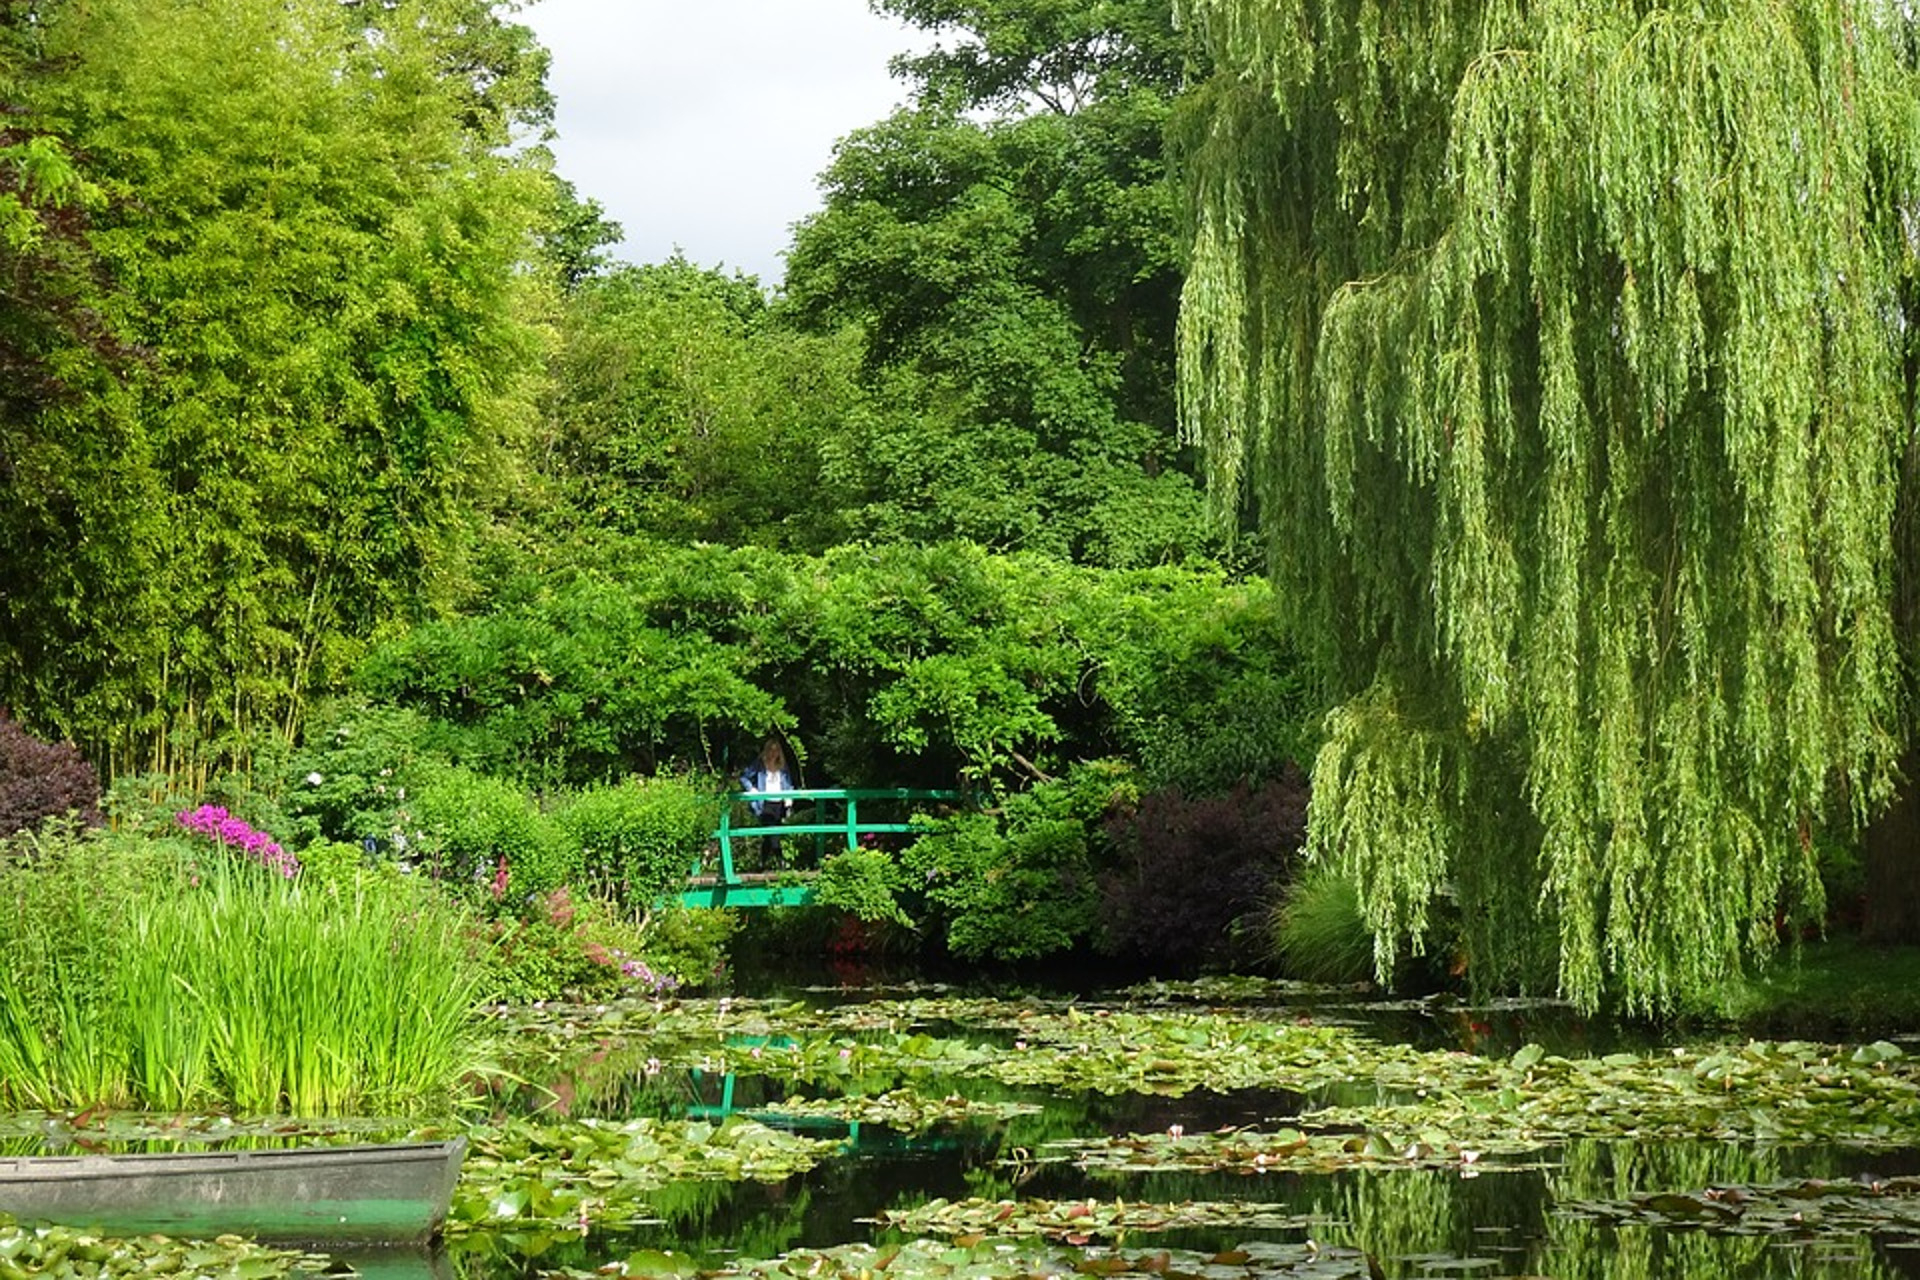 Honfleur-giverny-normandy-claude monet-private tour-excursion